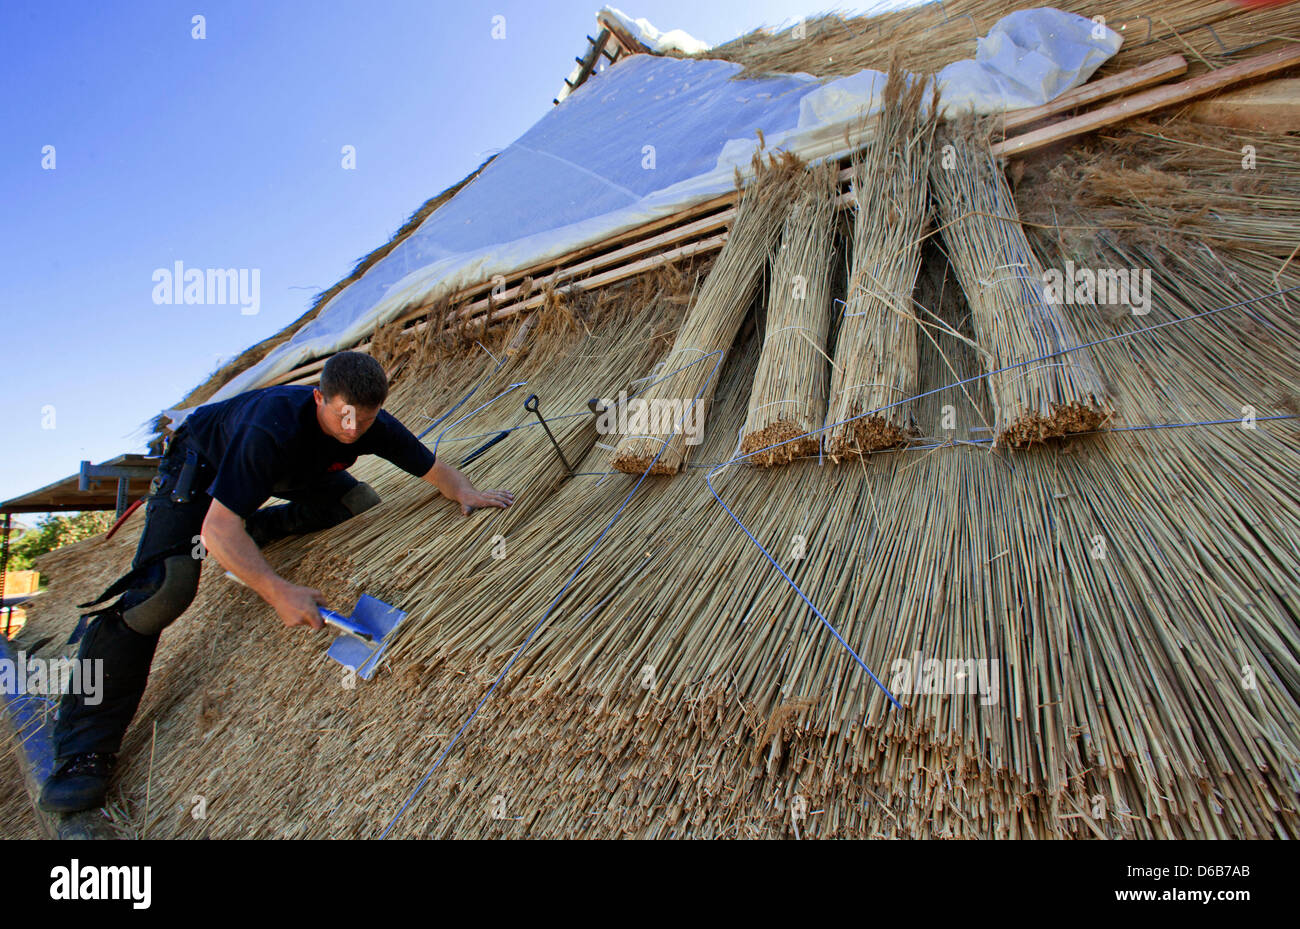 Thatcher Mathias Hahn works on a thatched roof on an old farmhouse in Hoben near Wismar, Germany, 13 August 2012. - Stock Image